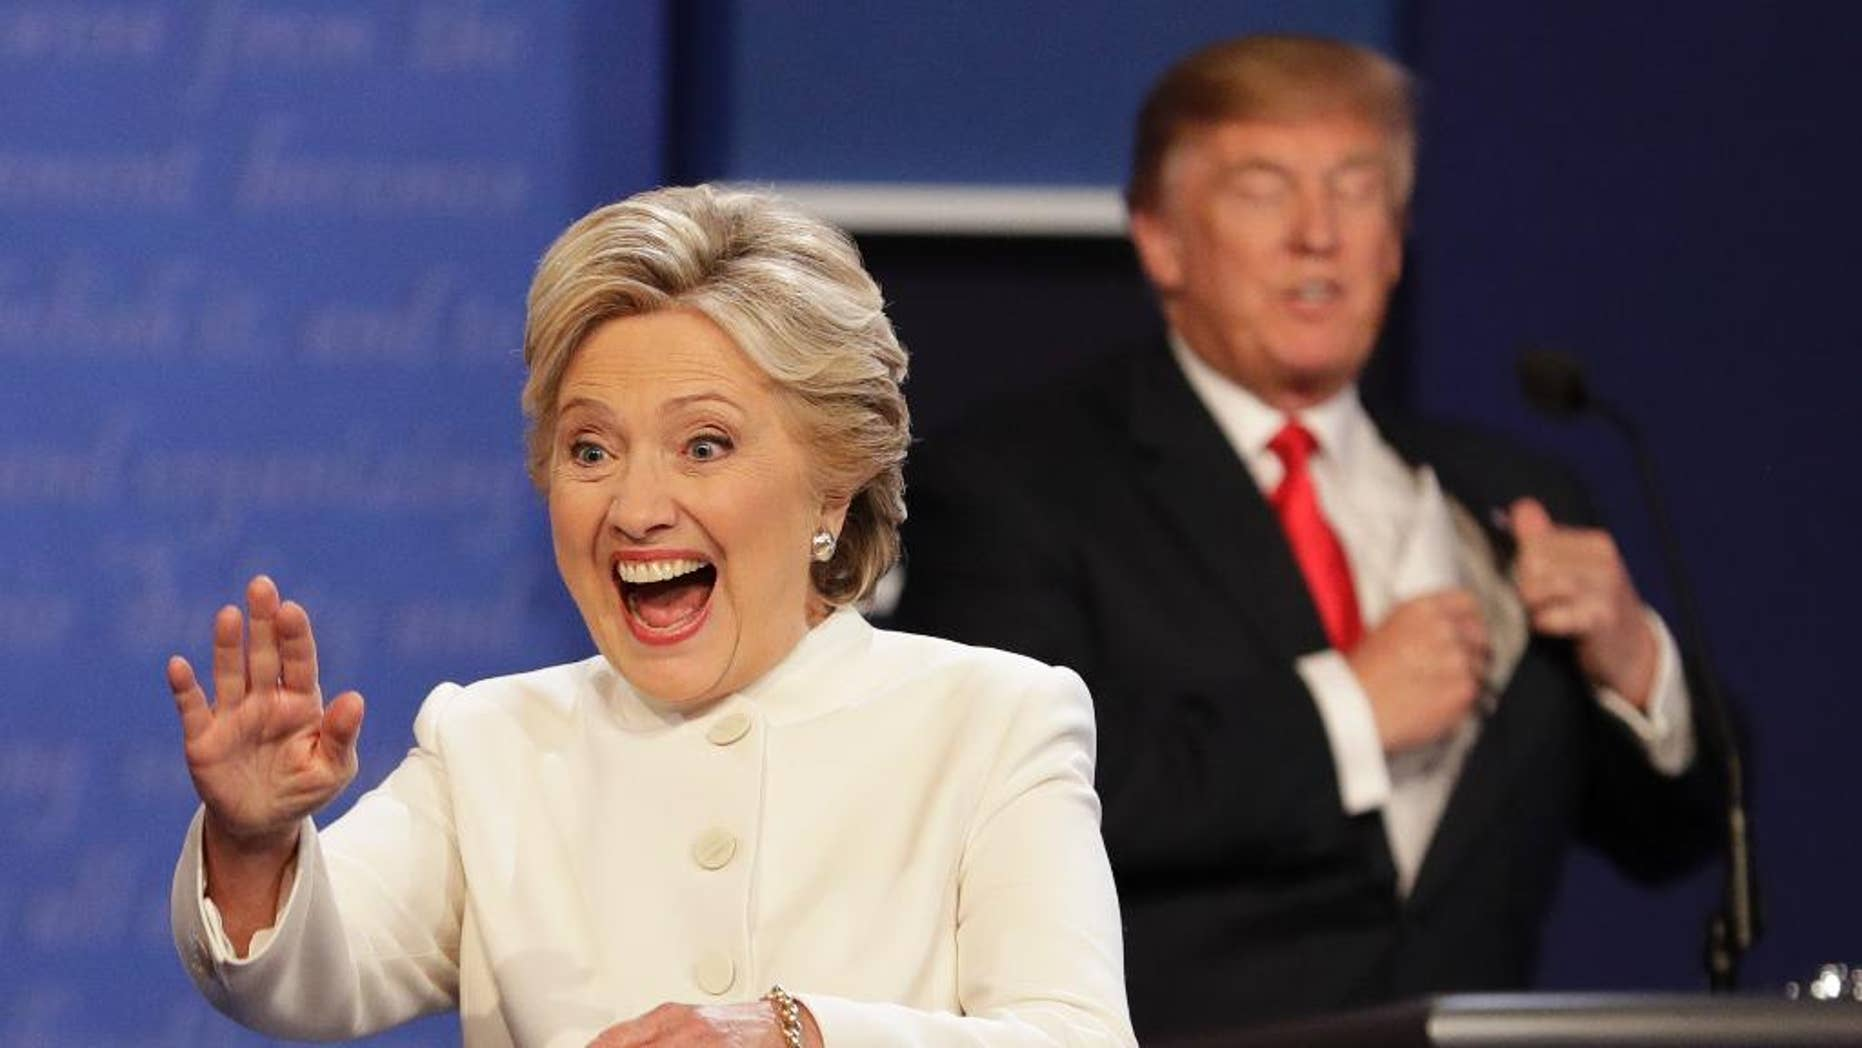 Democratic presidential nominee Hillary Clinton waves to the audience as Republican presidential nominee Donald Trump puts his notes away after the third presidential debate at UNLV in Las Vegas, Wednesday, Oct. 19, 2016. (AP Photo/John Locher)